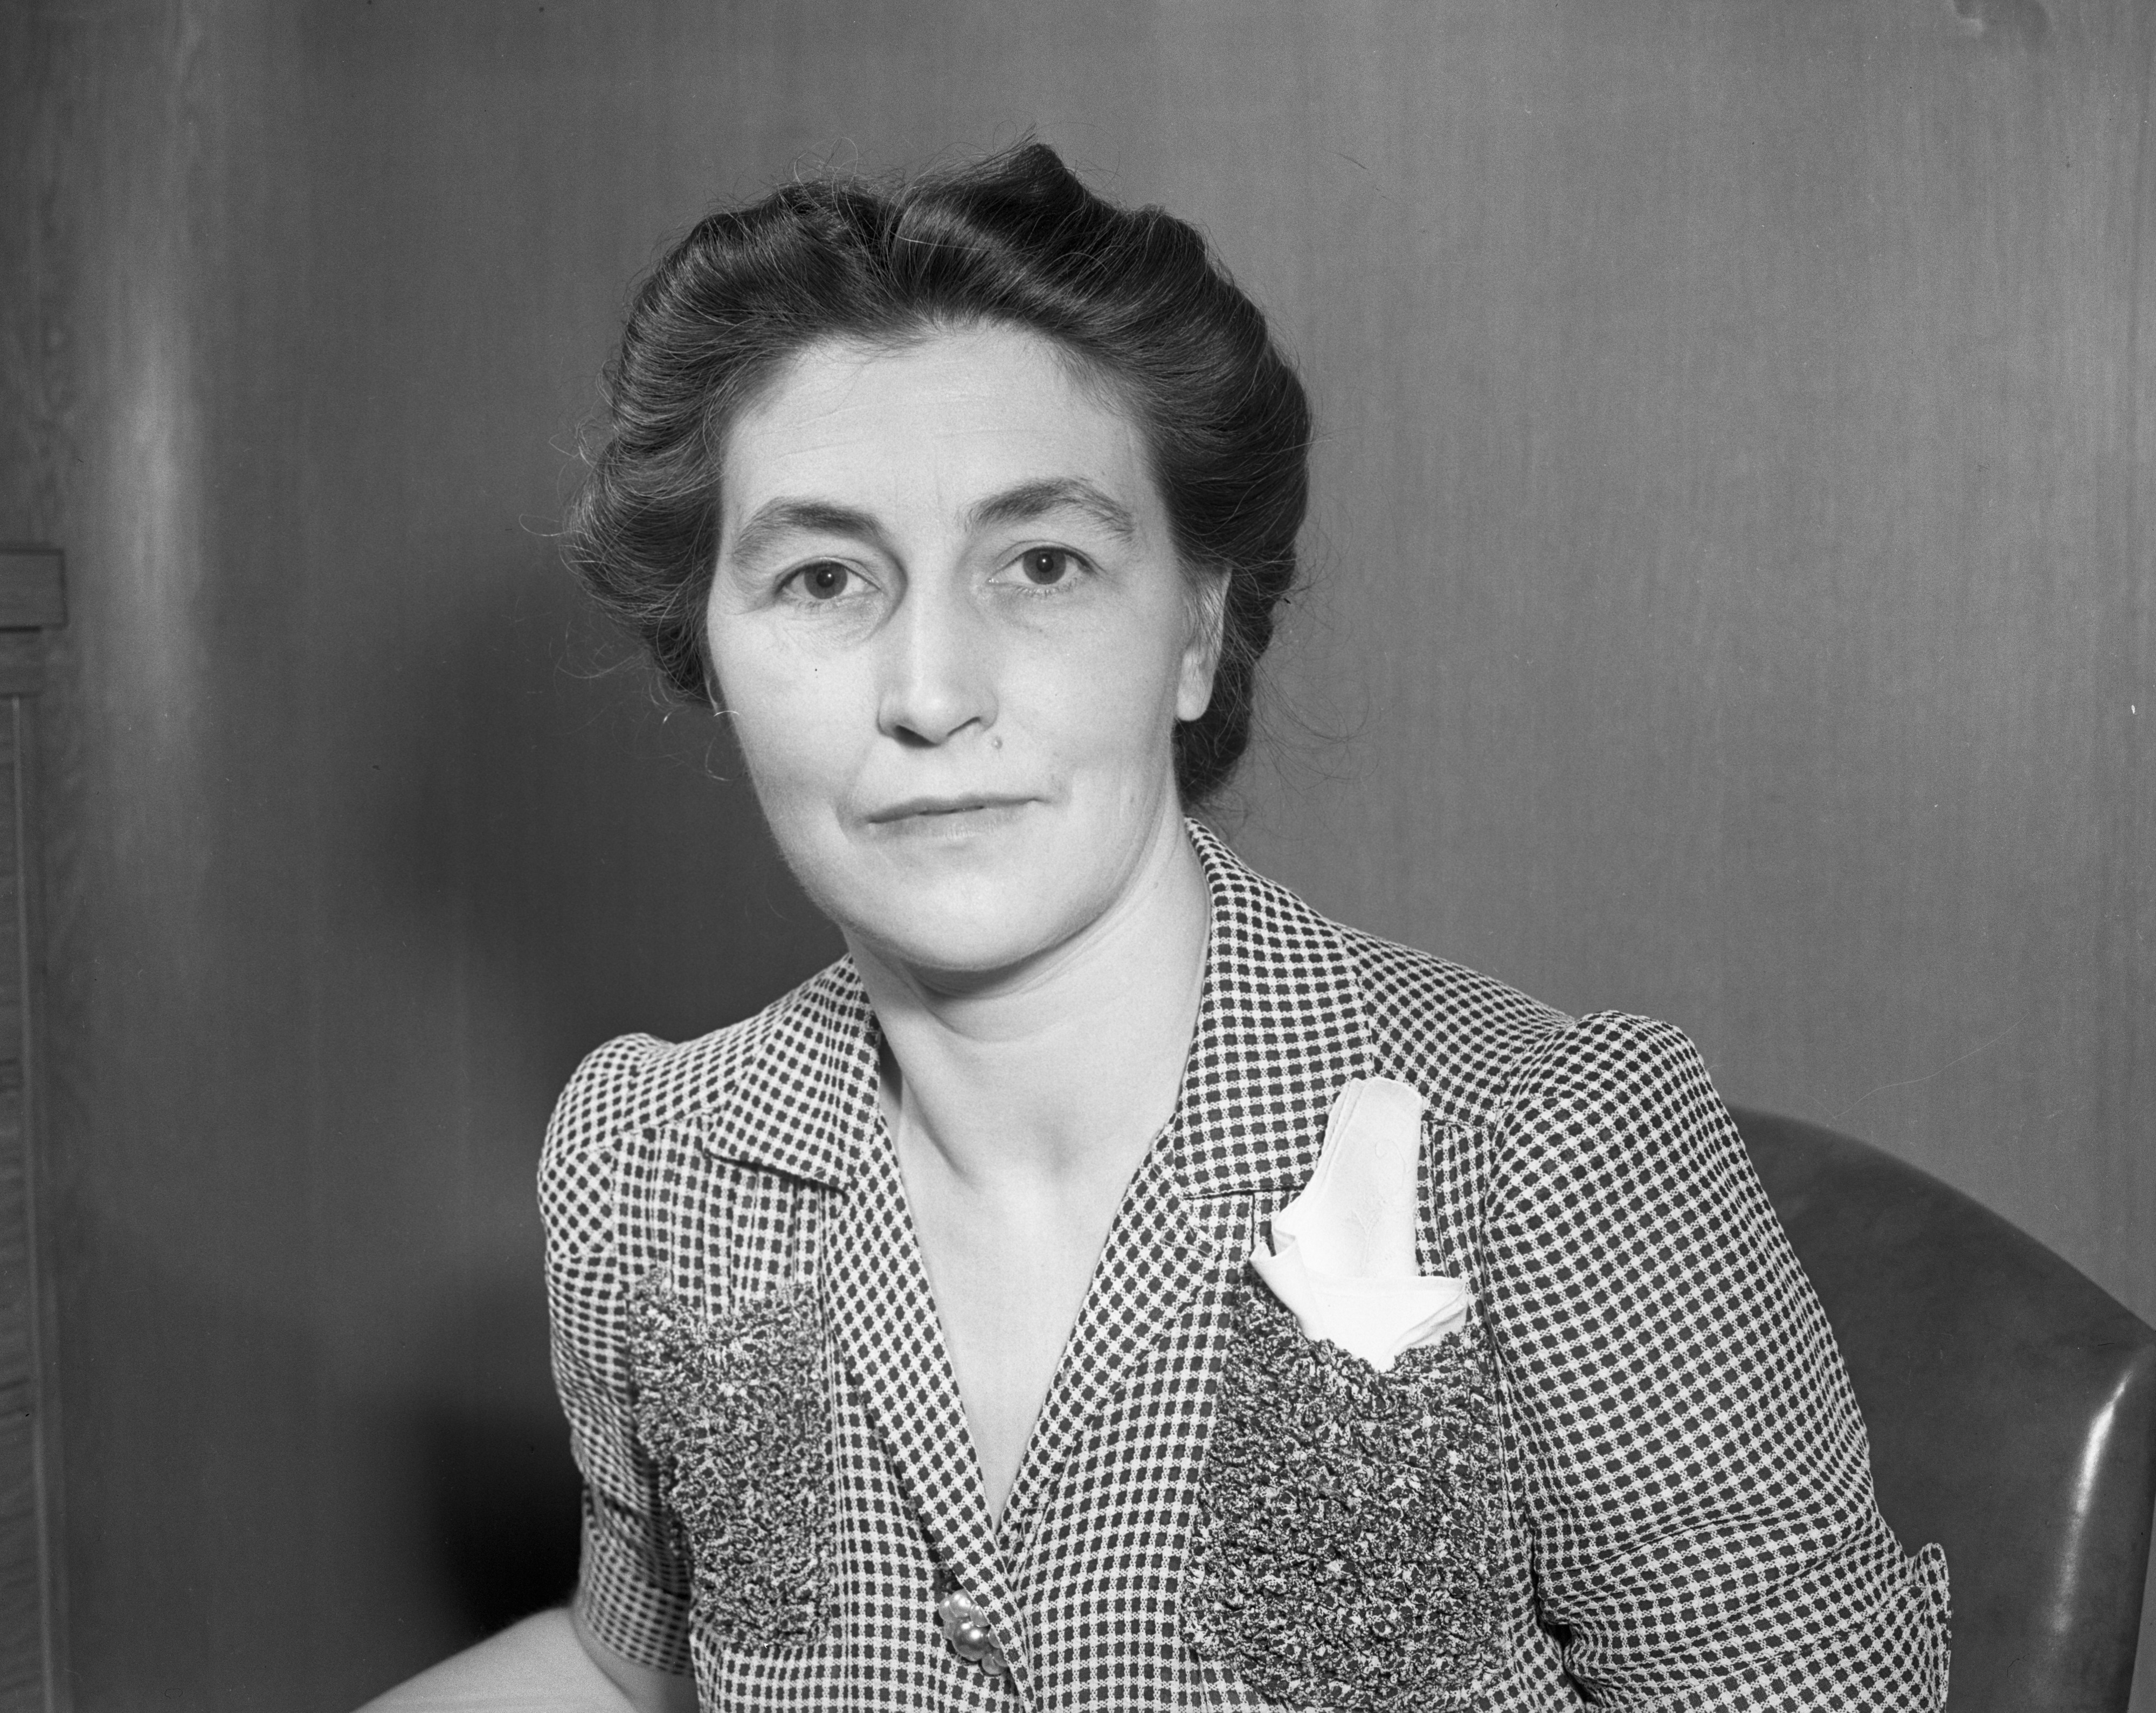 Mrs. Merle Malin, Red Cross Director, undated image